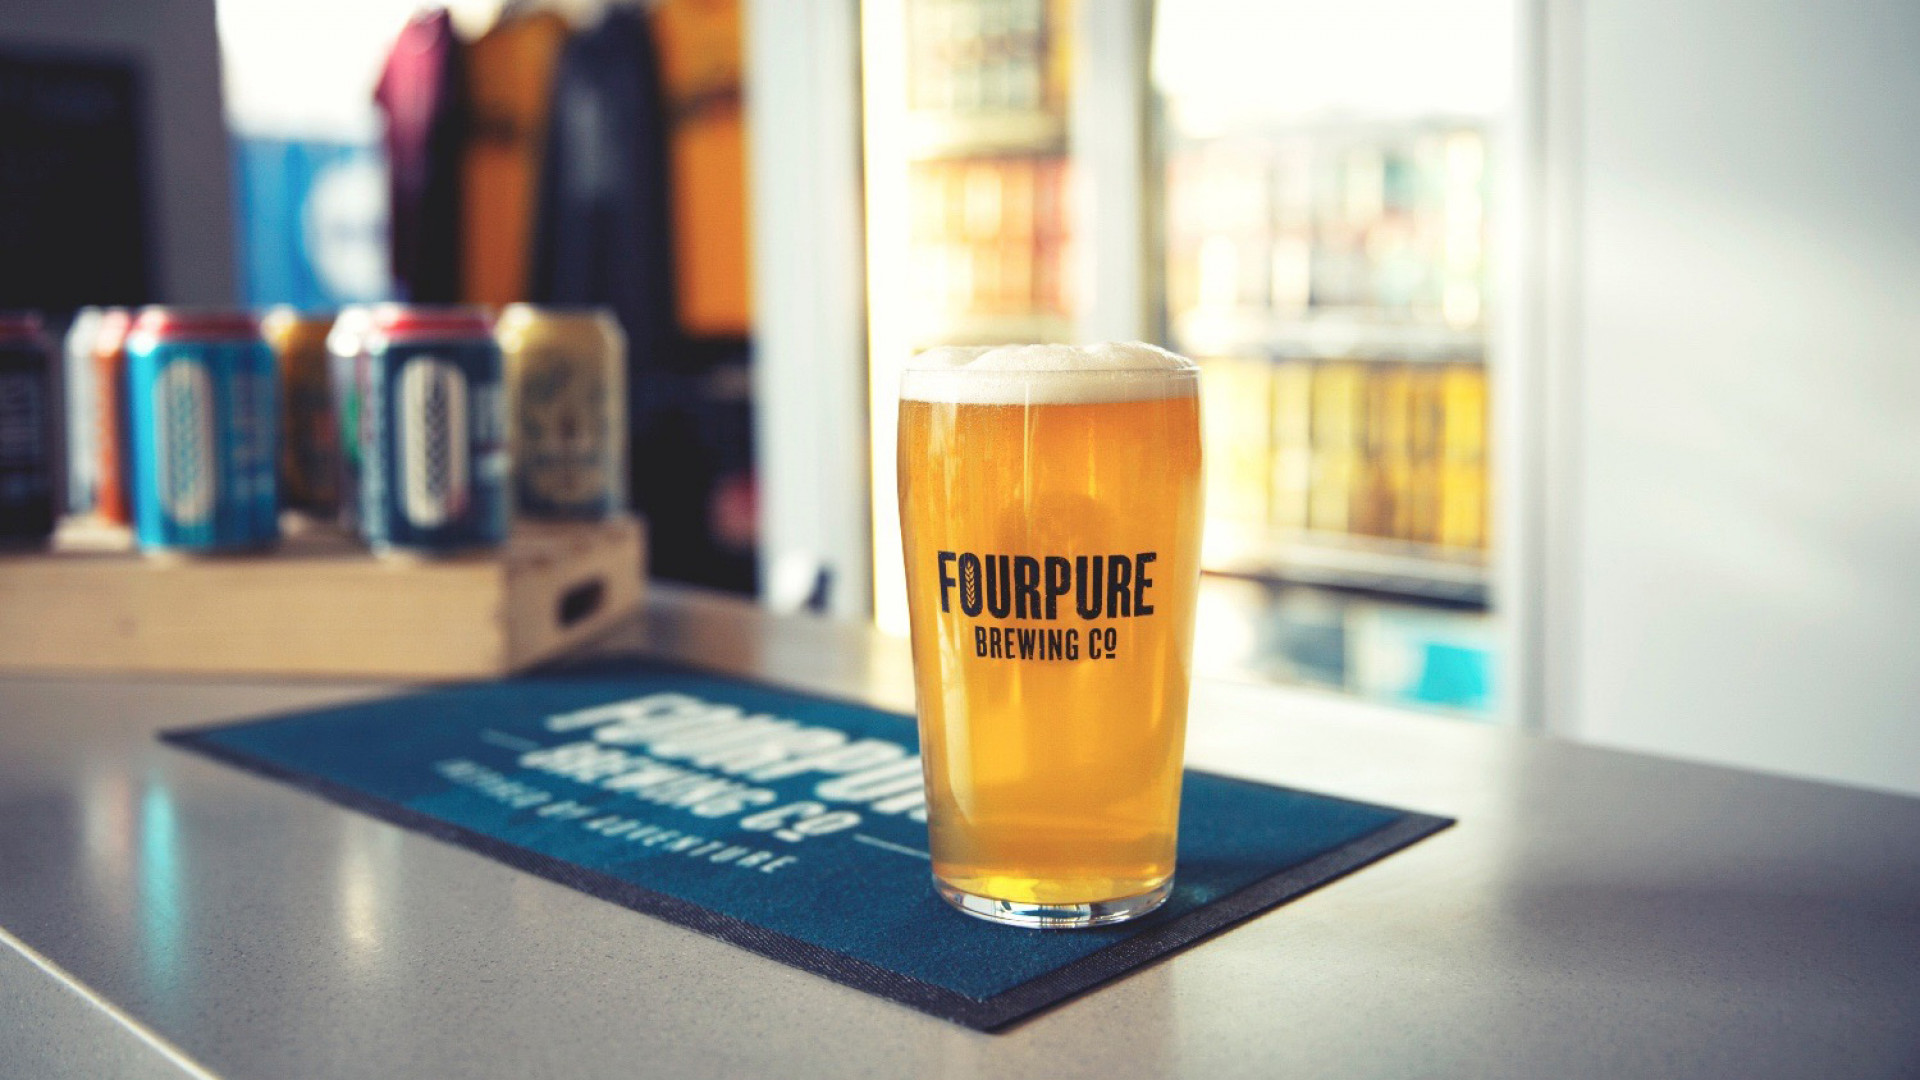 Fourpure Brewing Co, Bermondsey